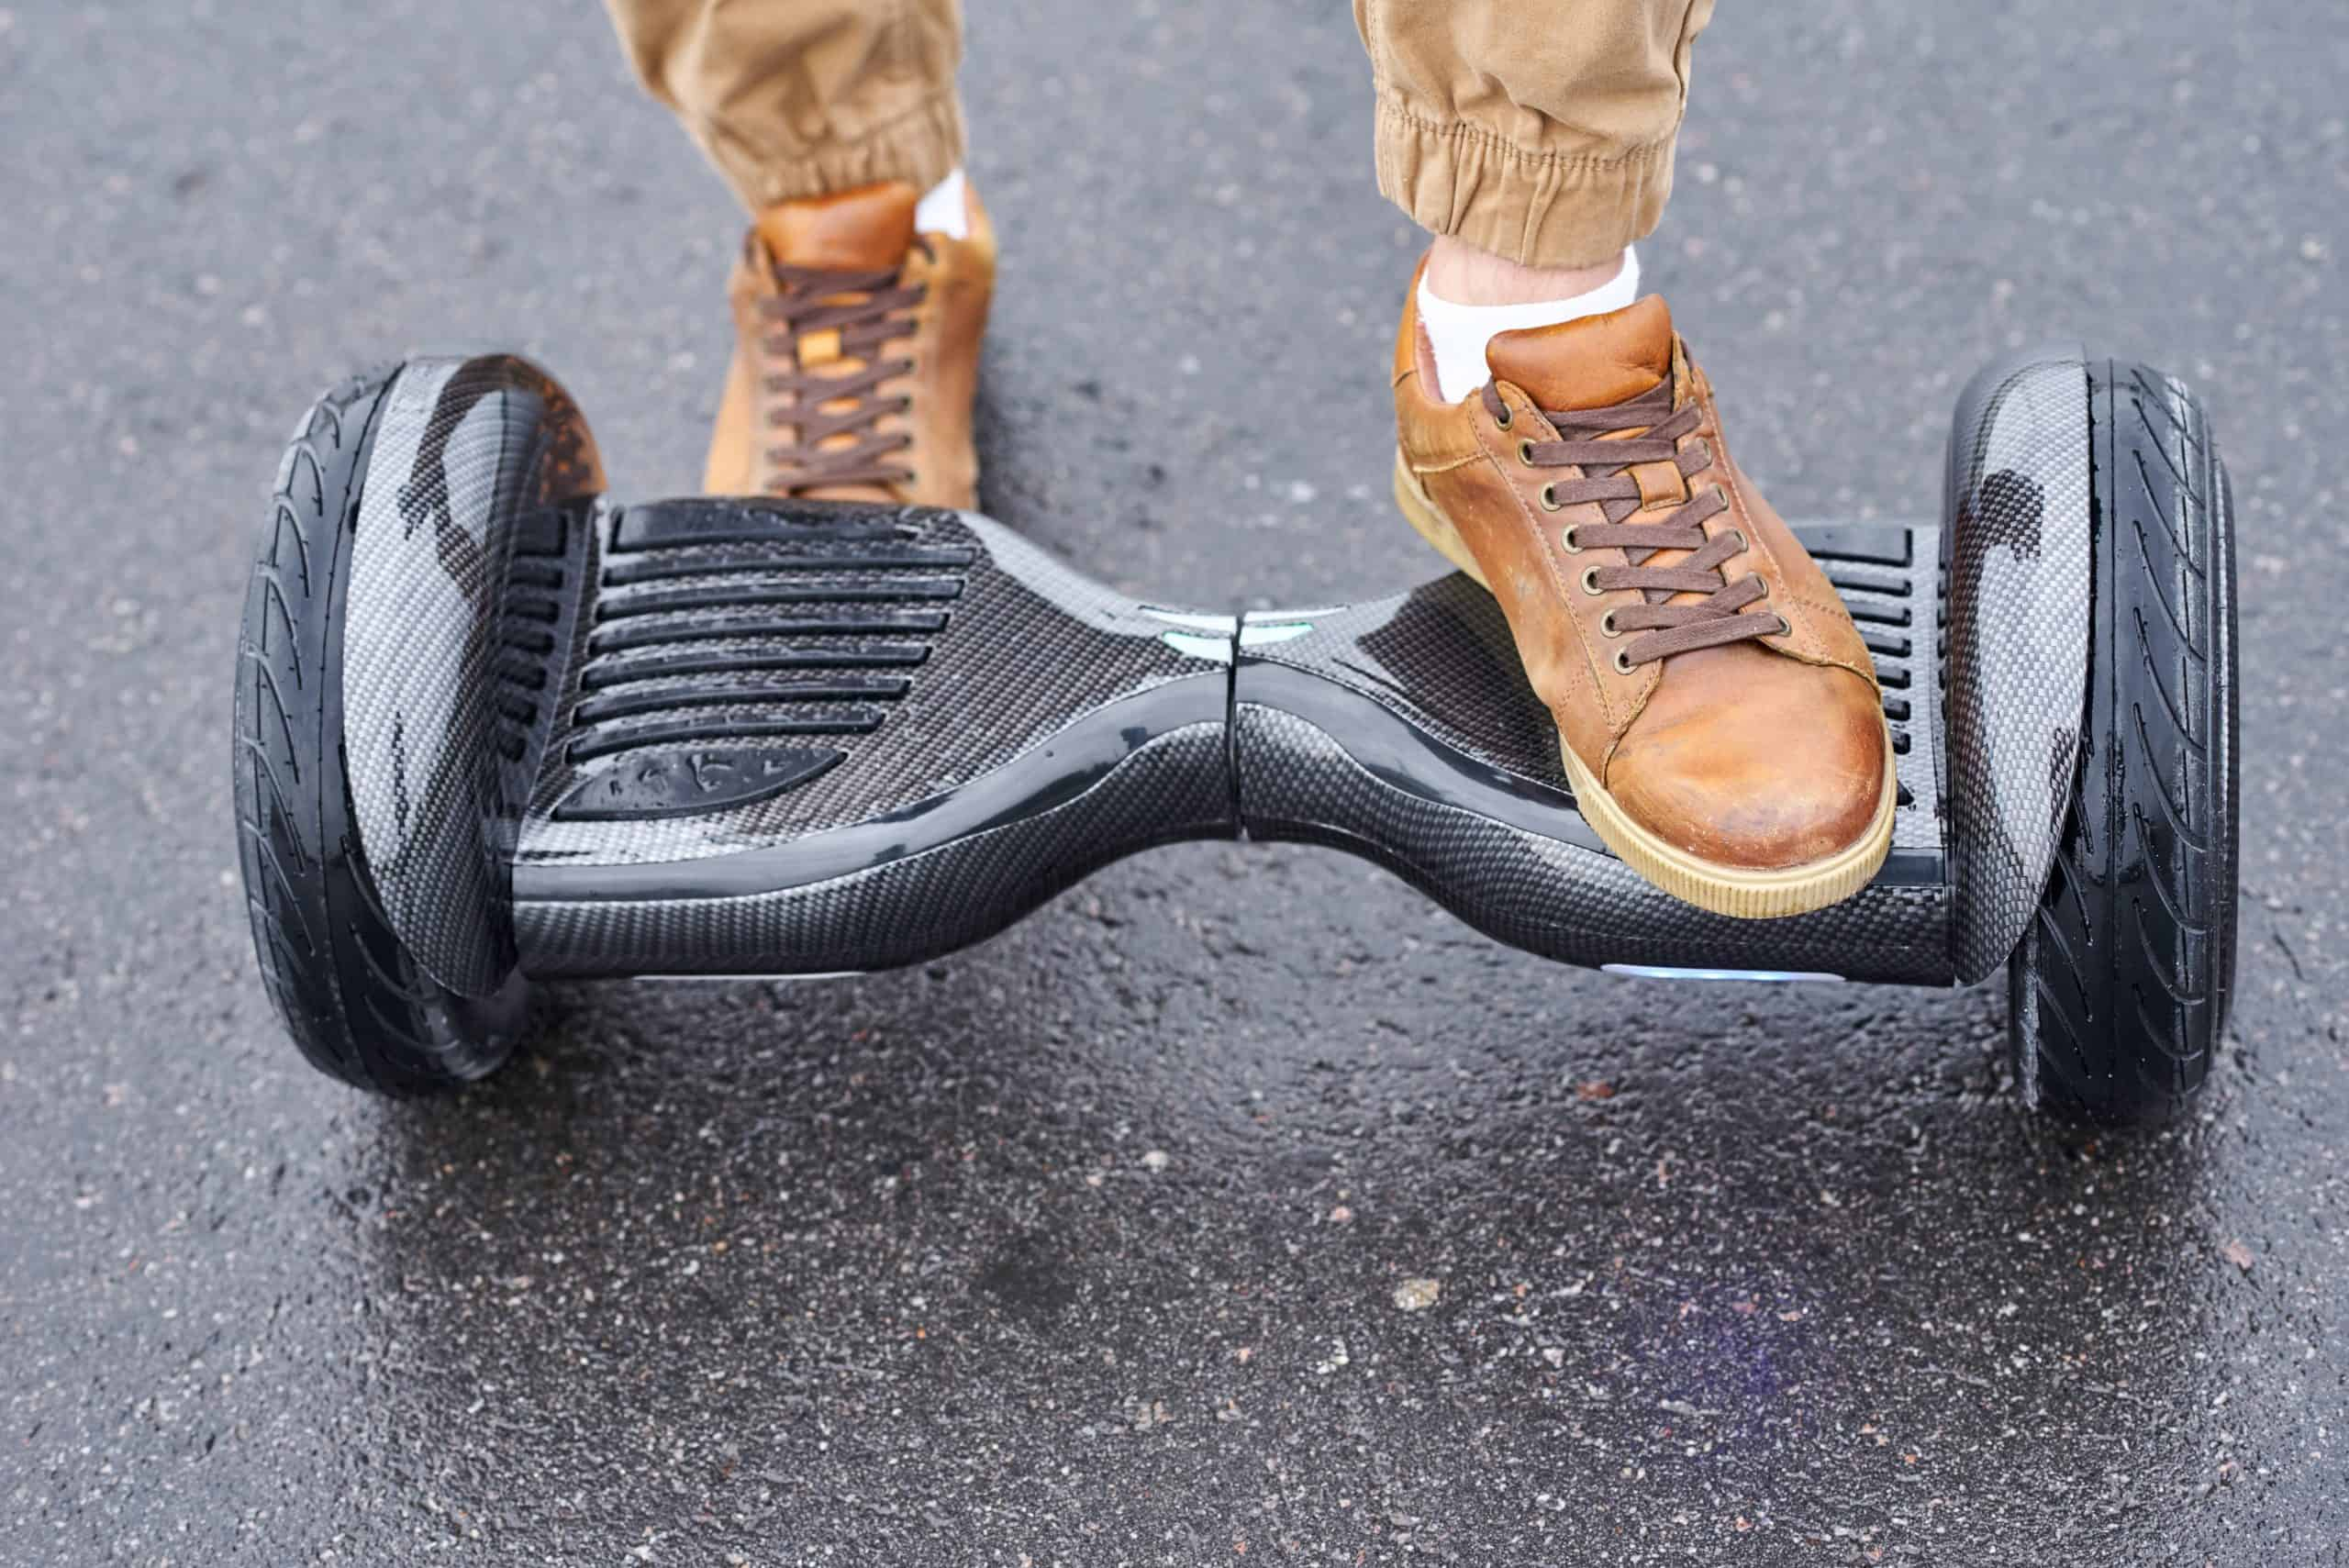 How Long Does A Hoverboard Last?